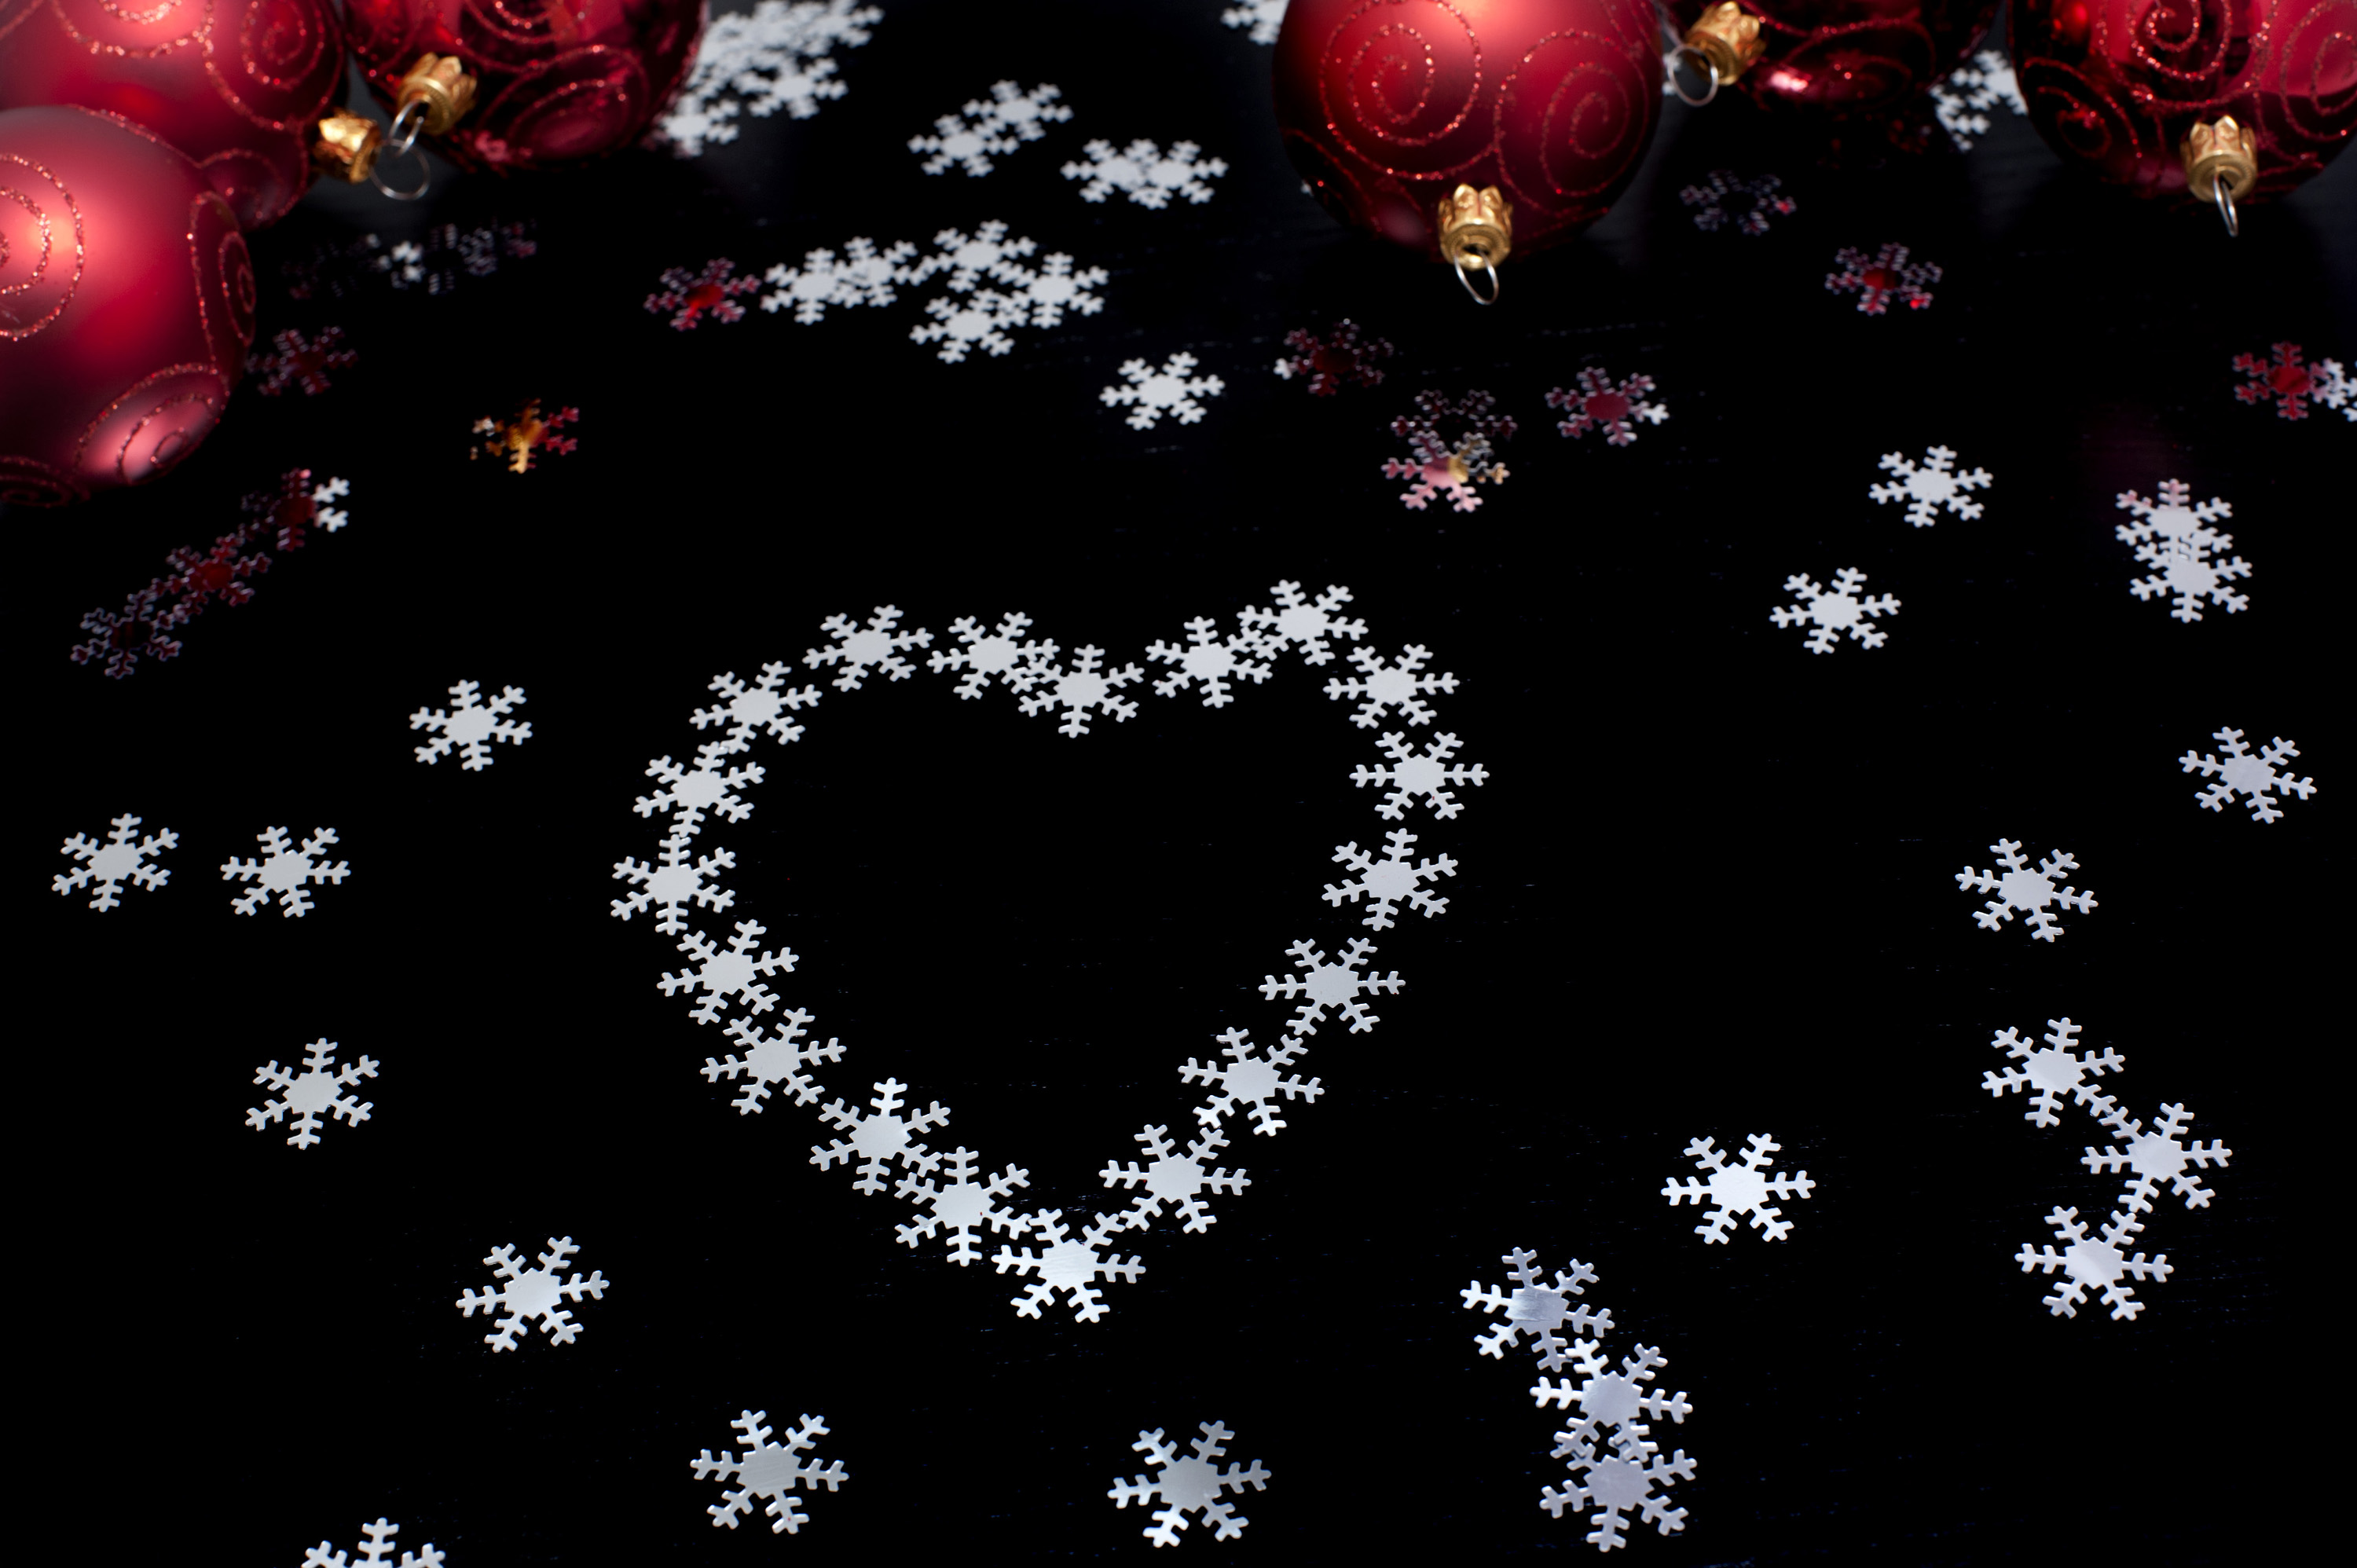 Christmas snowflake heart shape on a black background with scattered snowflakes and colourful Christmas baubles